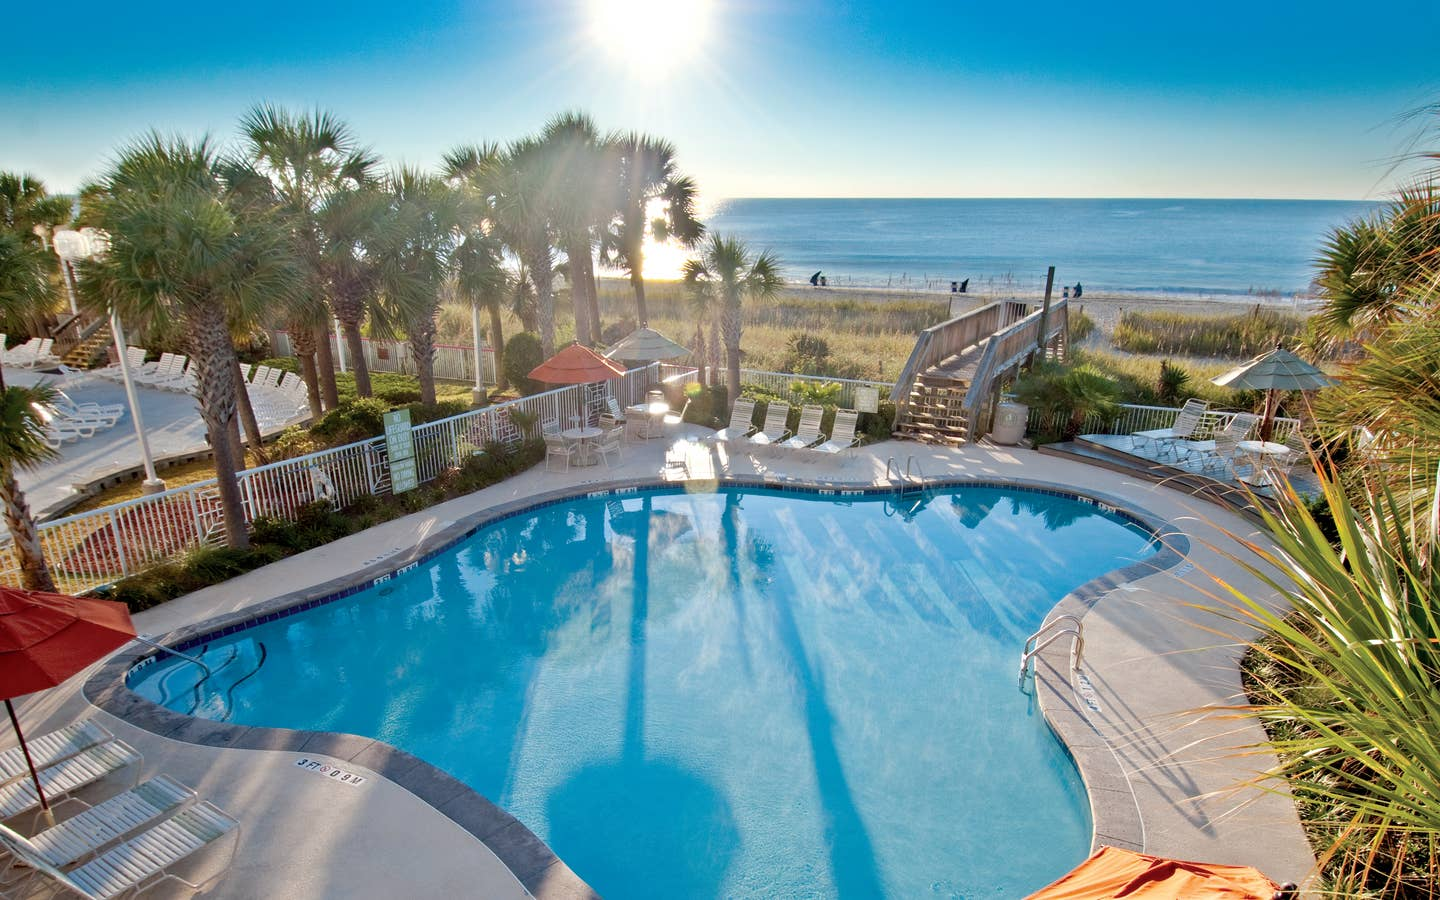 view of beach and pool at South Beach Resort in Myrtle Beach, SC